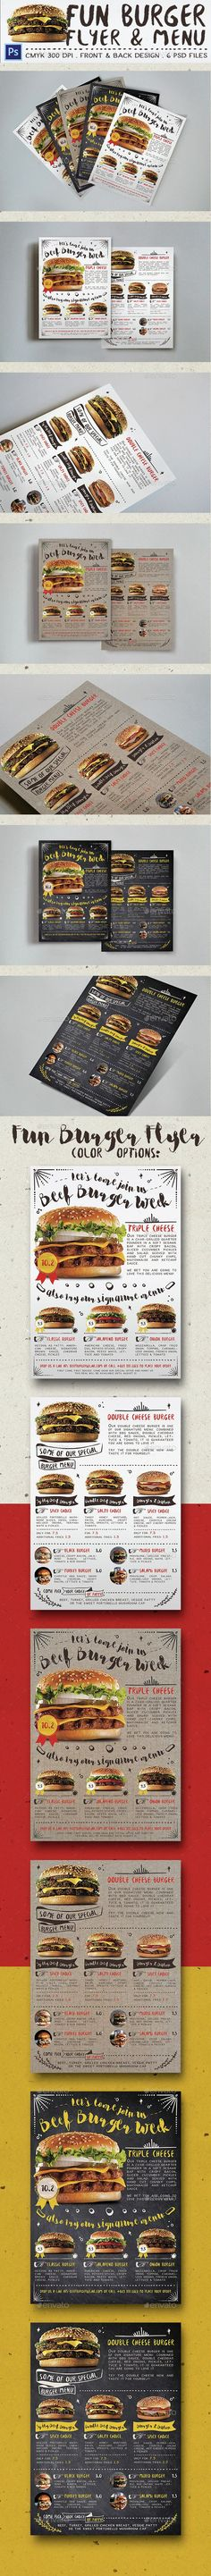 Burger Restaurant Flyer Template Vol6 Flyer template, Burgers - restaurant flyer